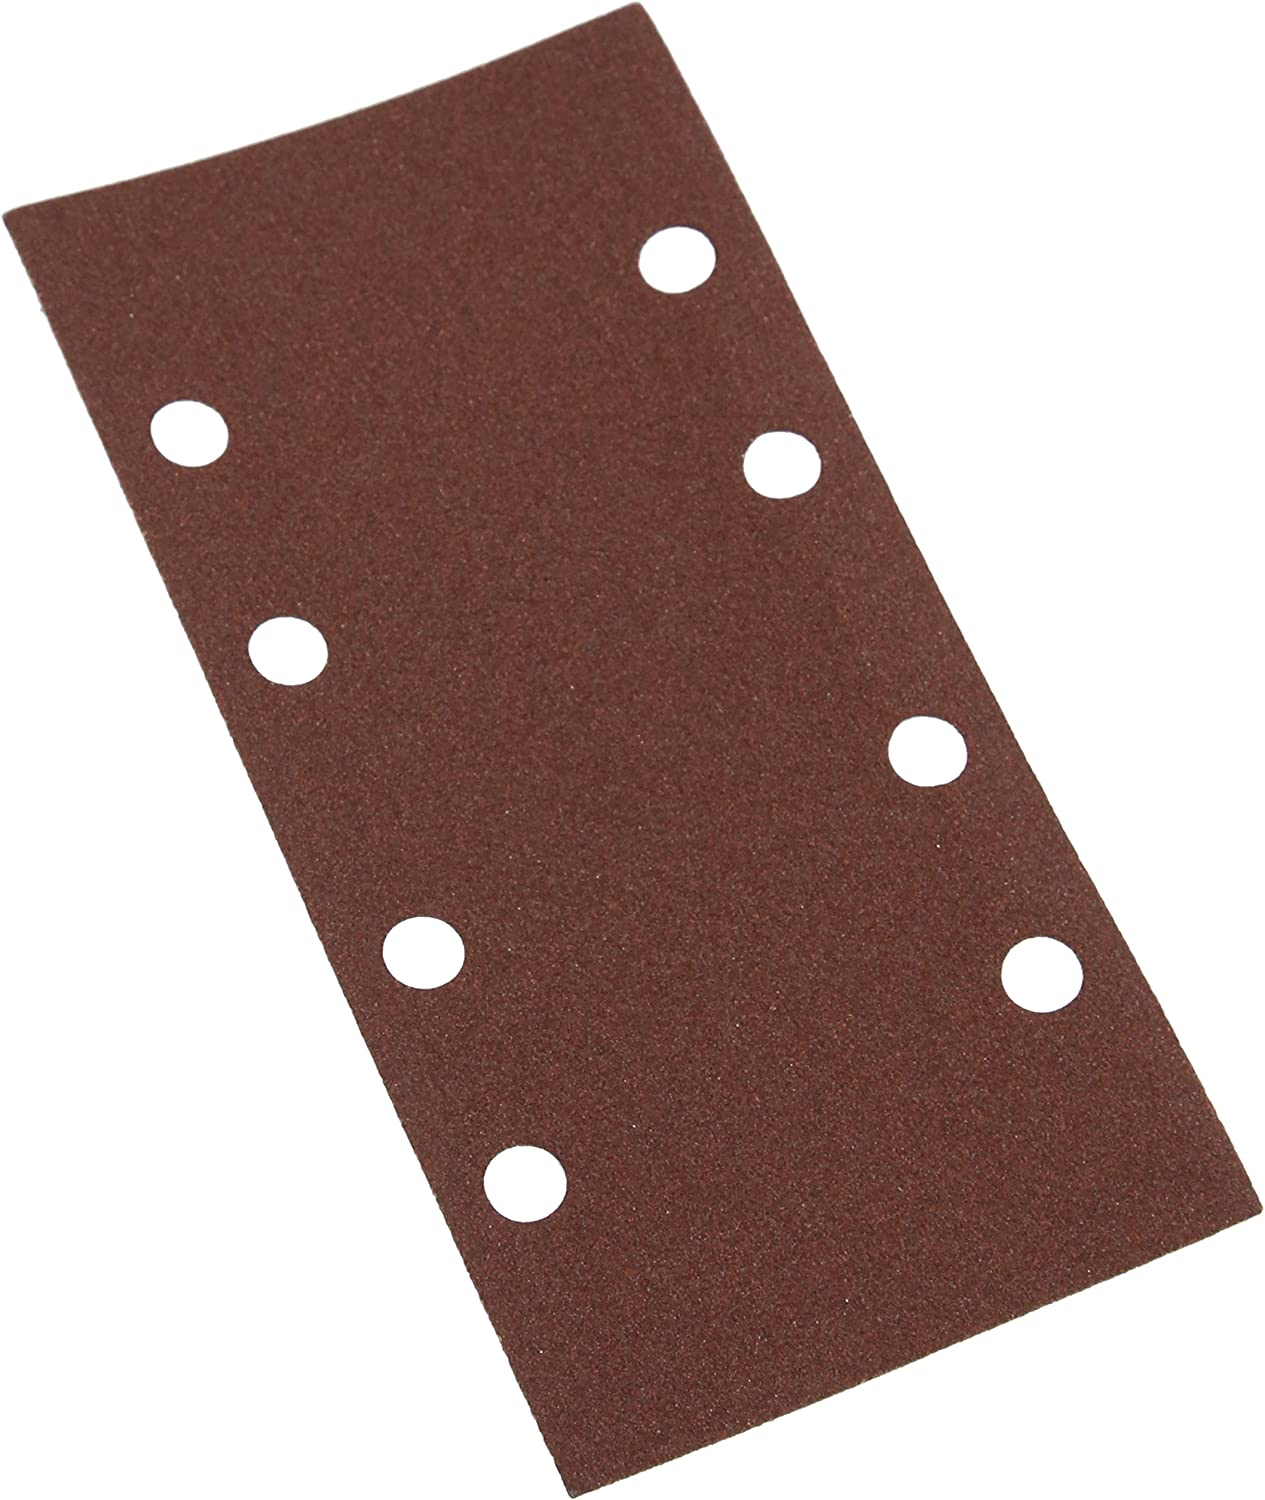 Pack of 10 Silverline 945689 Hook and Loop 1//2 Sheets Punched 120 Grit